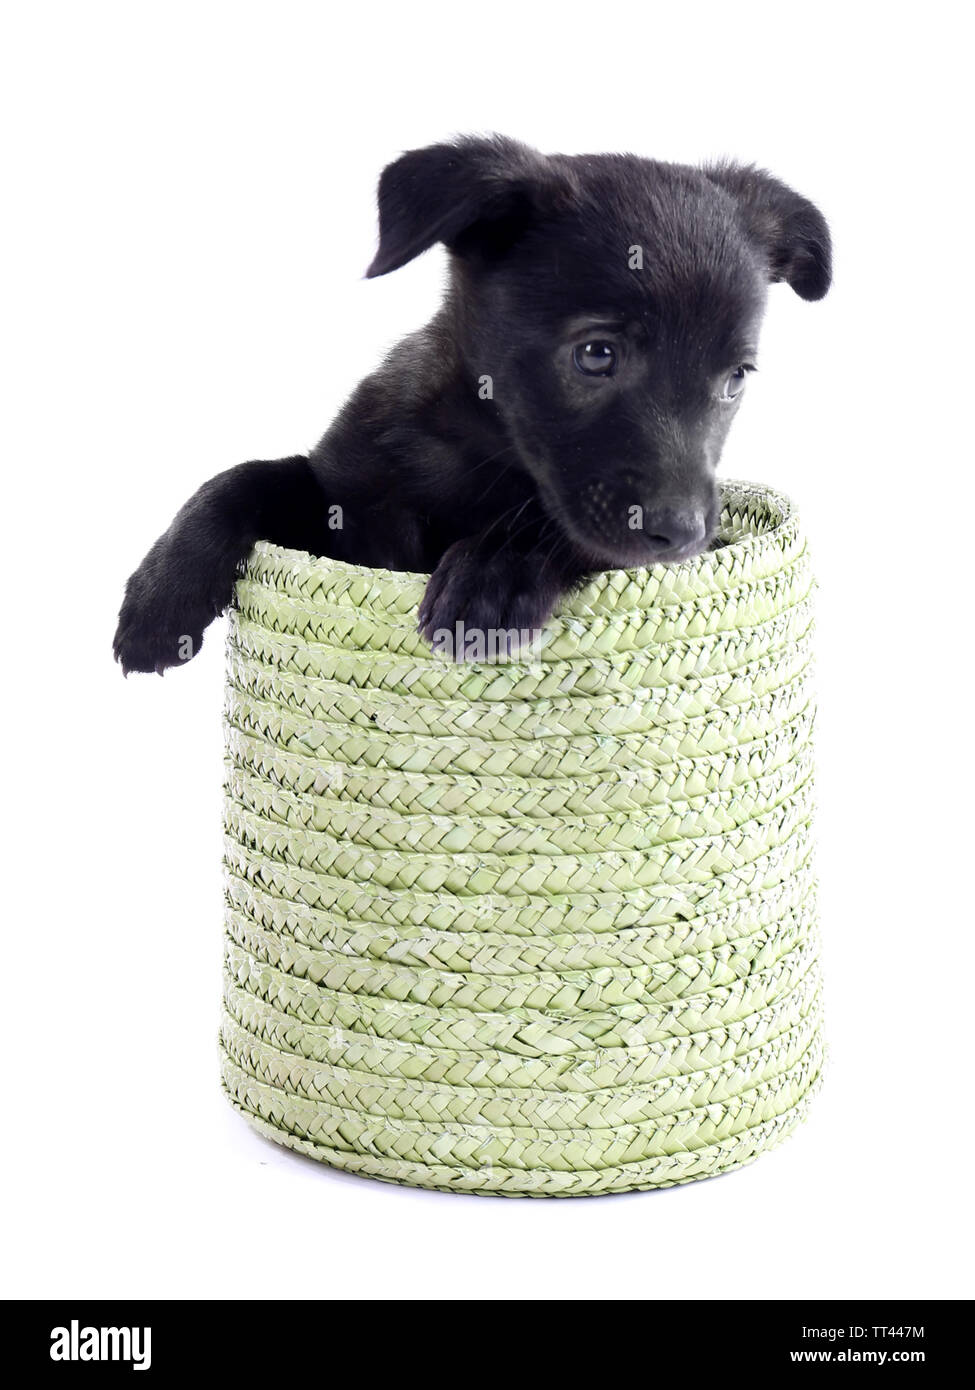 Funny puppy in a round basket isolated on white - Stock Image